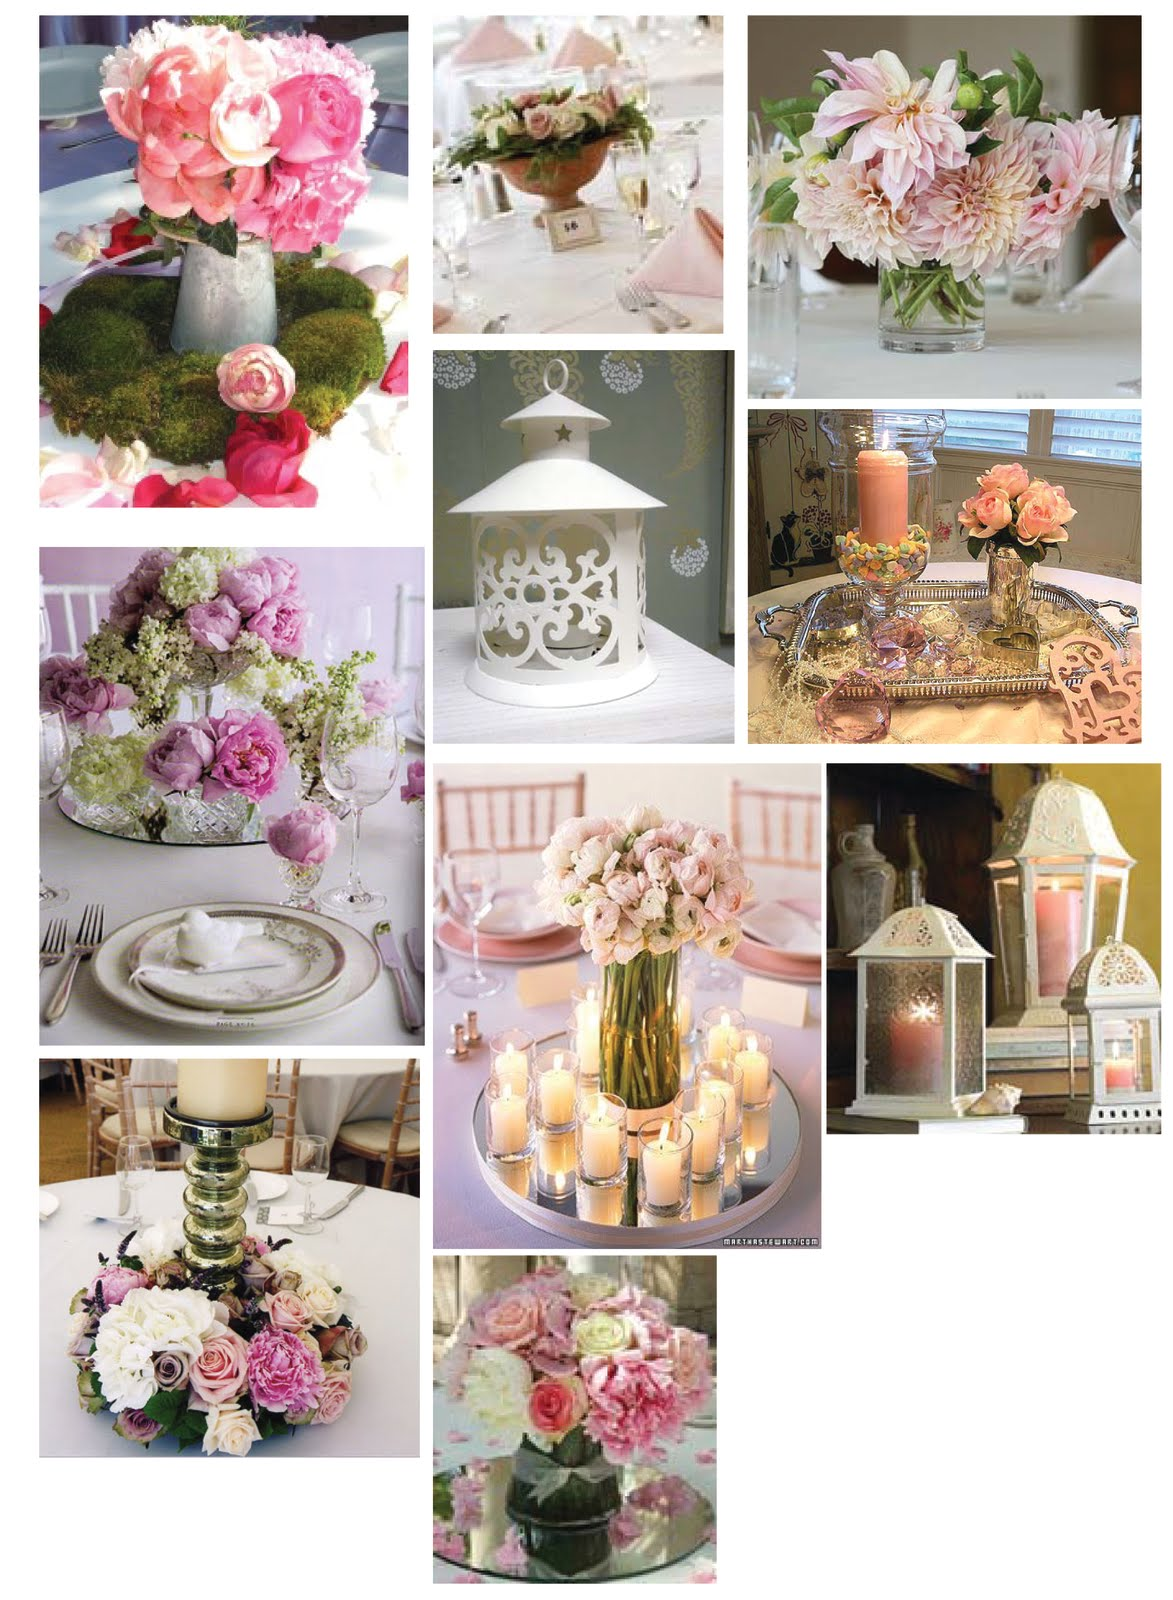 Shabby Chic Wedding Inspiration please! - wedding planning